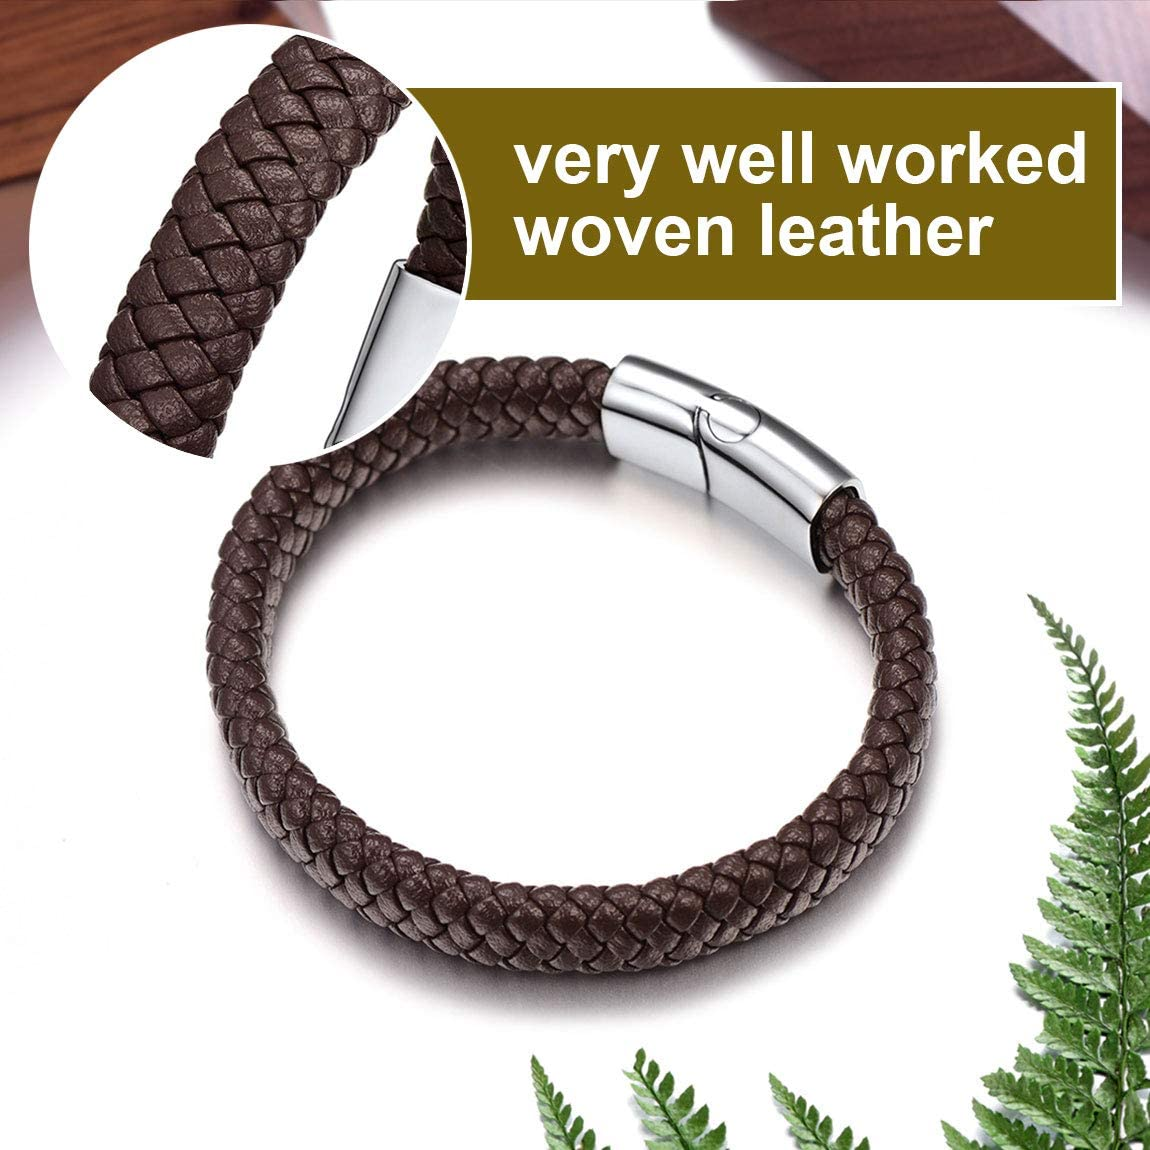 ChainsPro Black//Brown Leather Rope Bracelet for Men Mens Leather Bracelet Braided Rope Bracelet for Men Boys Boyfriend Father Birthday